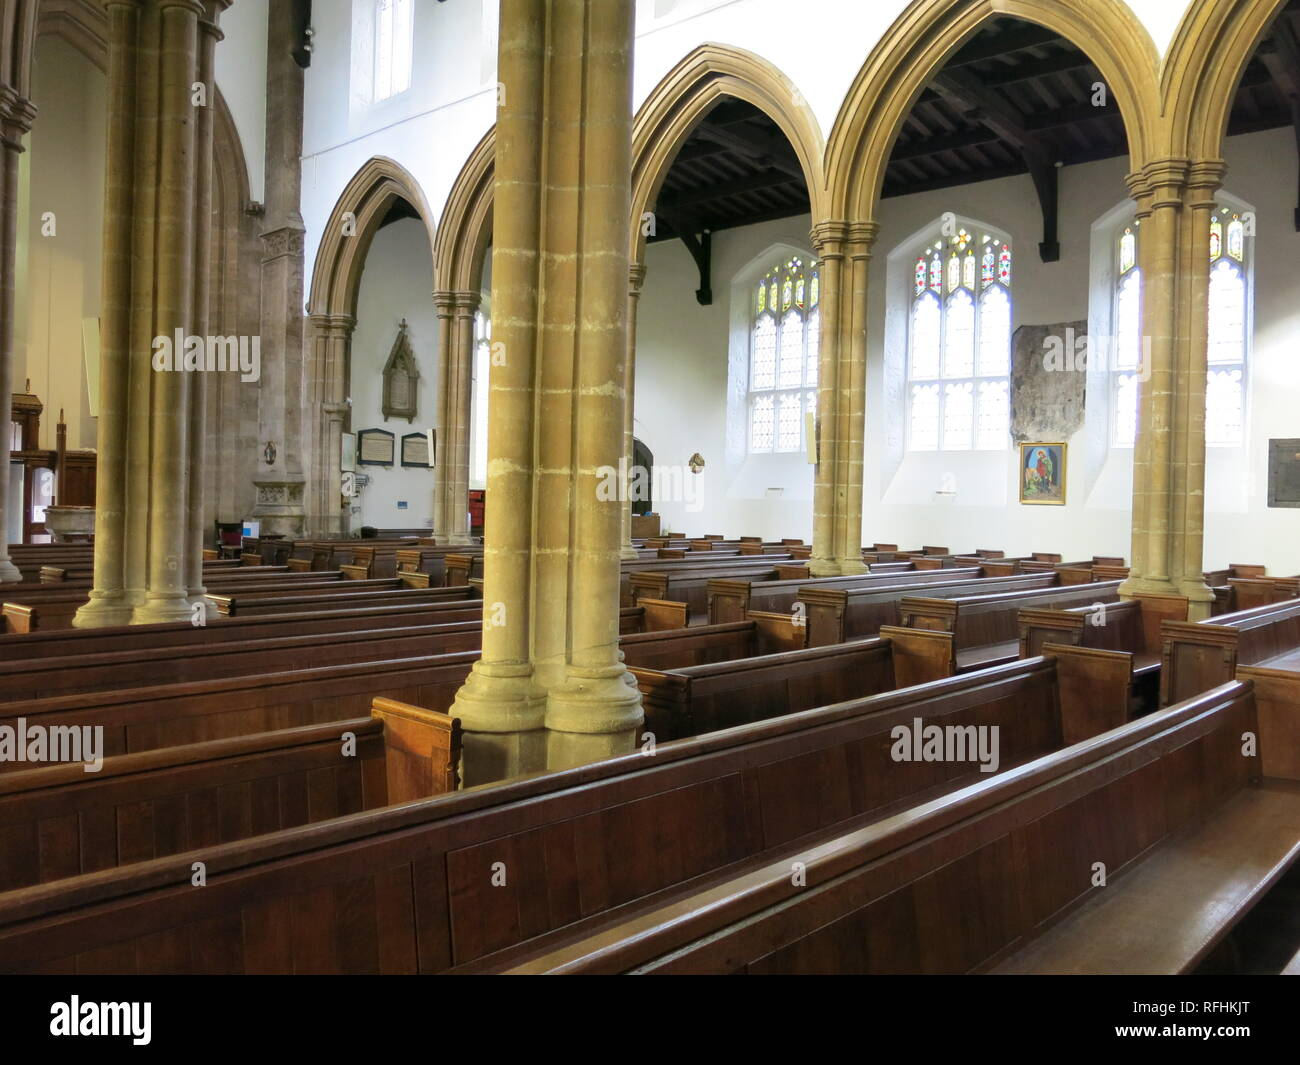 Interior view of the Anglican church of St Peter and St Paul, Grade 1 listed and the oldest building in Kettering, Northamptonshire. - Stock Image